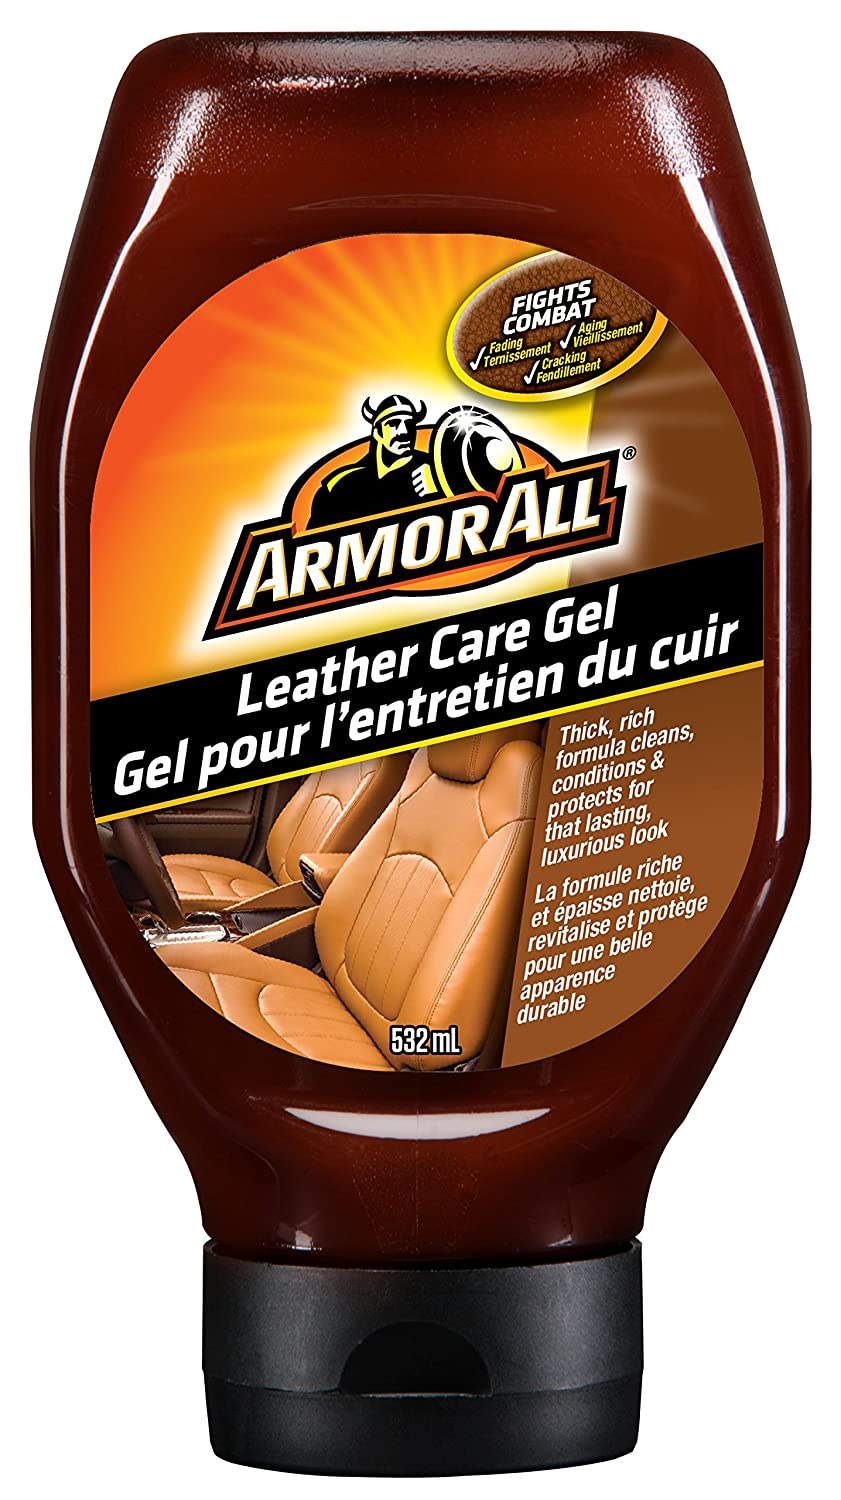 Armor All Leather Care Gel, 532ml Armored AutoGroup Canada 18418